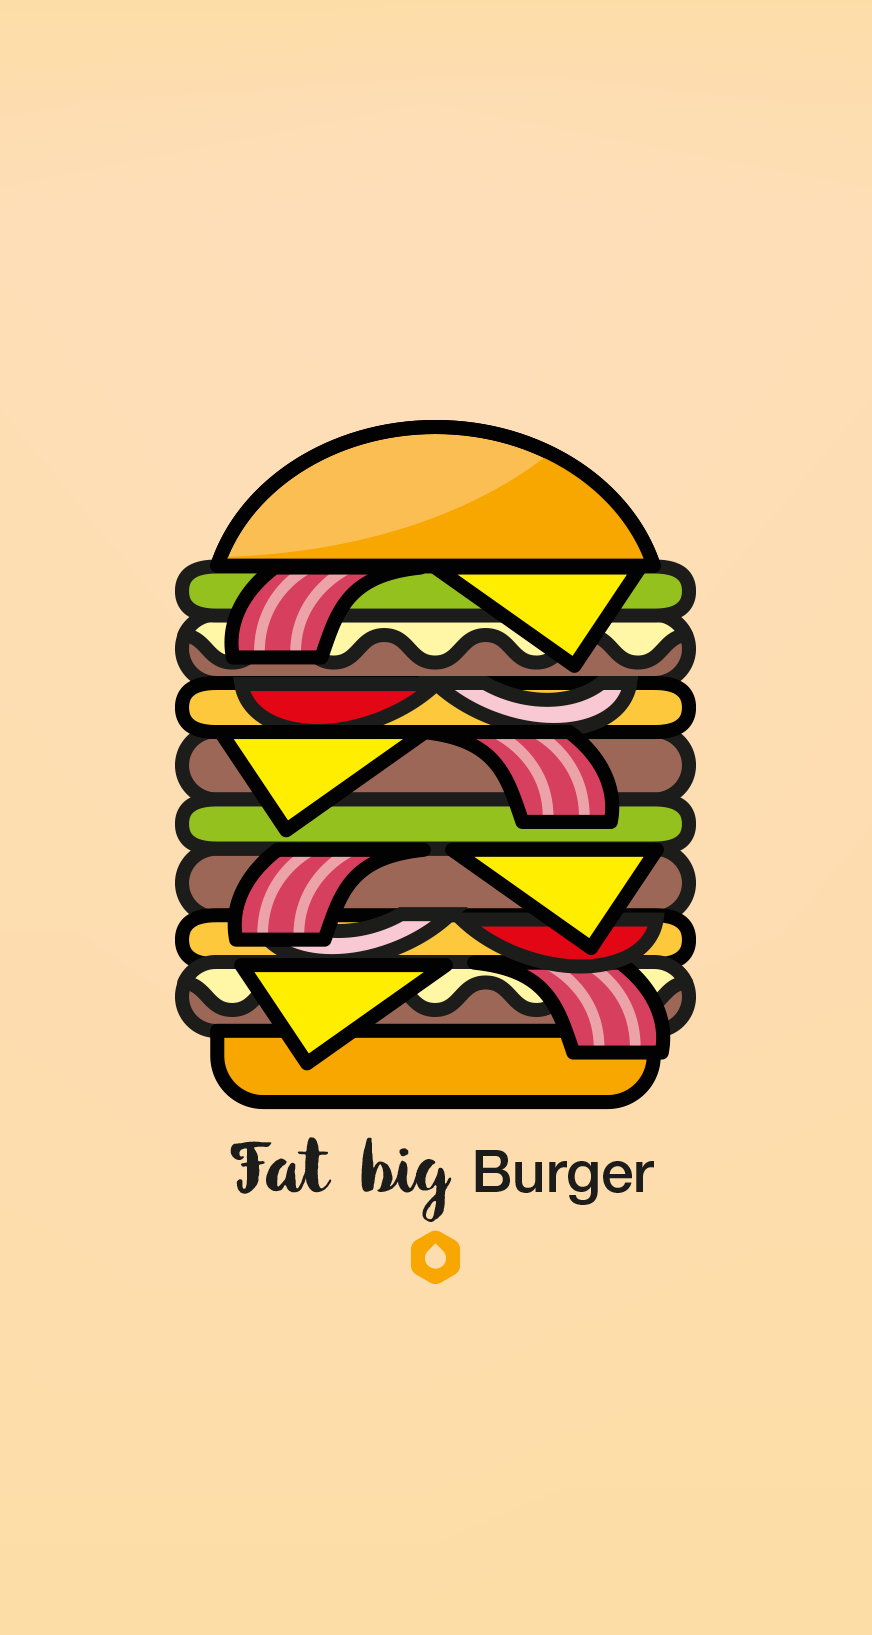 Wallpaper Pick Your Burger - iPhone6 - FatBig